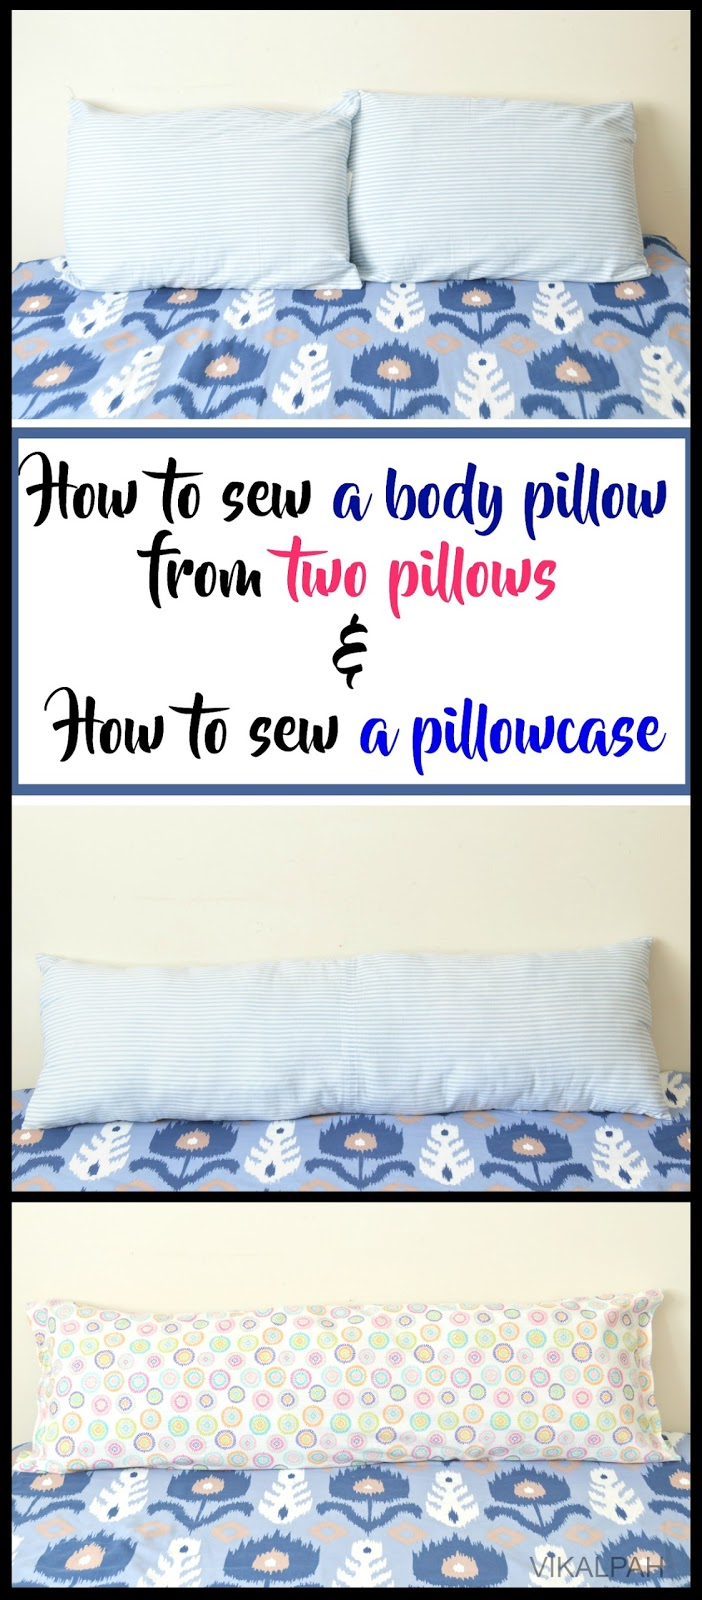 Vikalpah How To Sew A Body Pillow From Two Pillows And How To Sew A